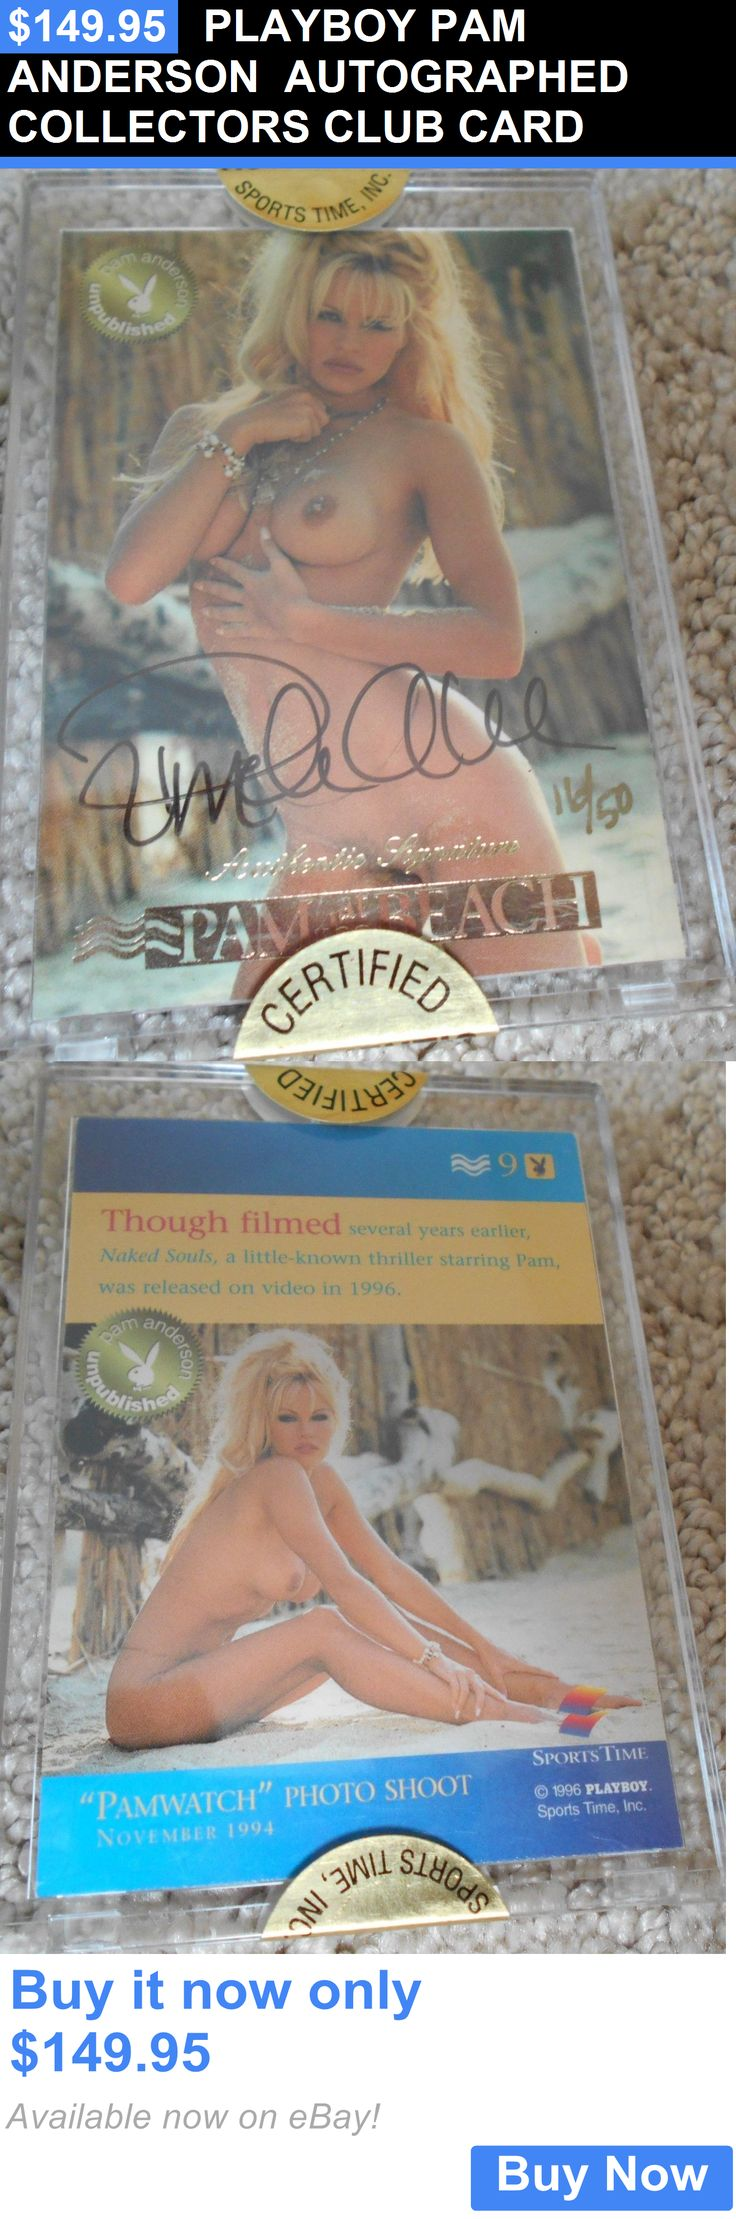 Celebrity Autographs: Playboy Pam Anderson Autographed Collectors Club Card BUY IT NOW ONLY: $149.95